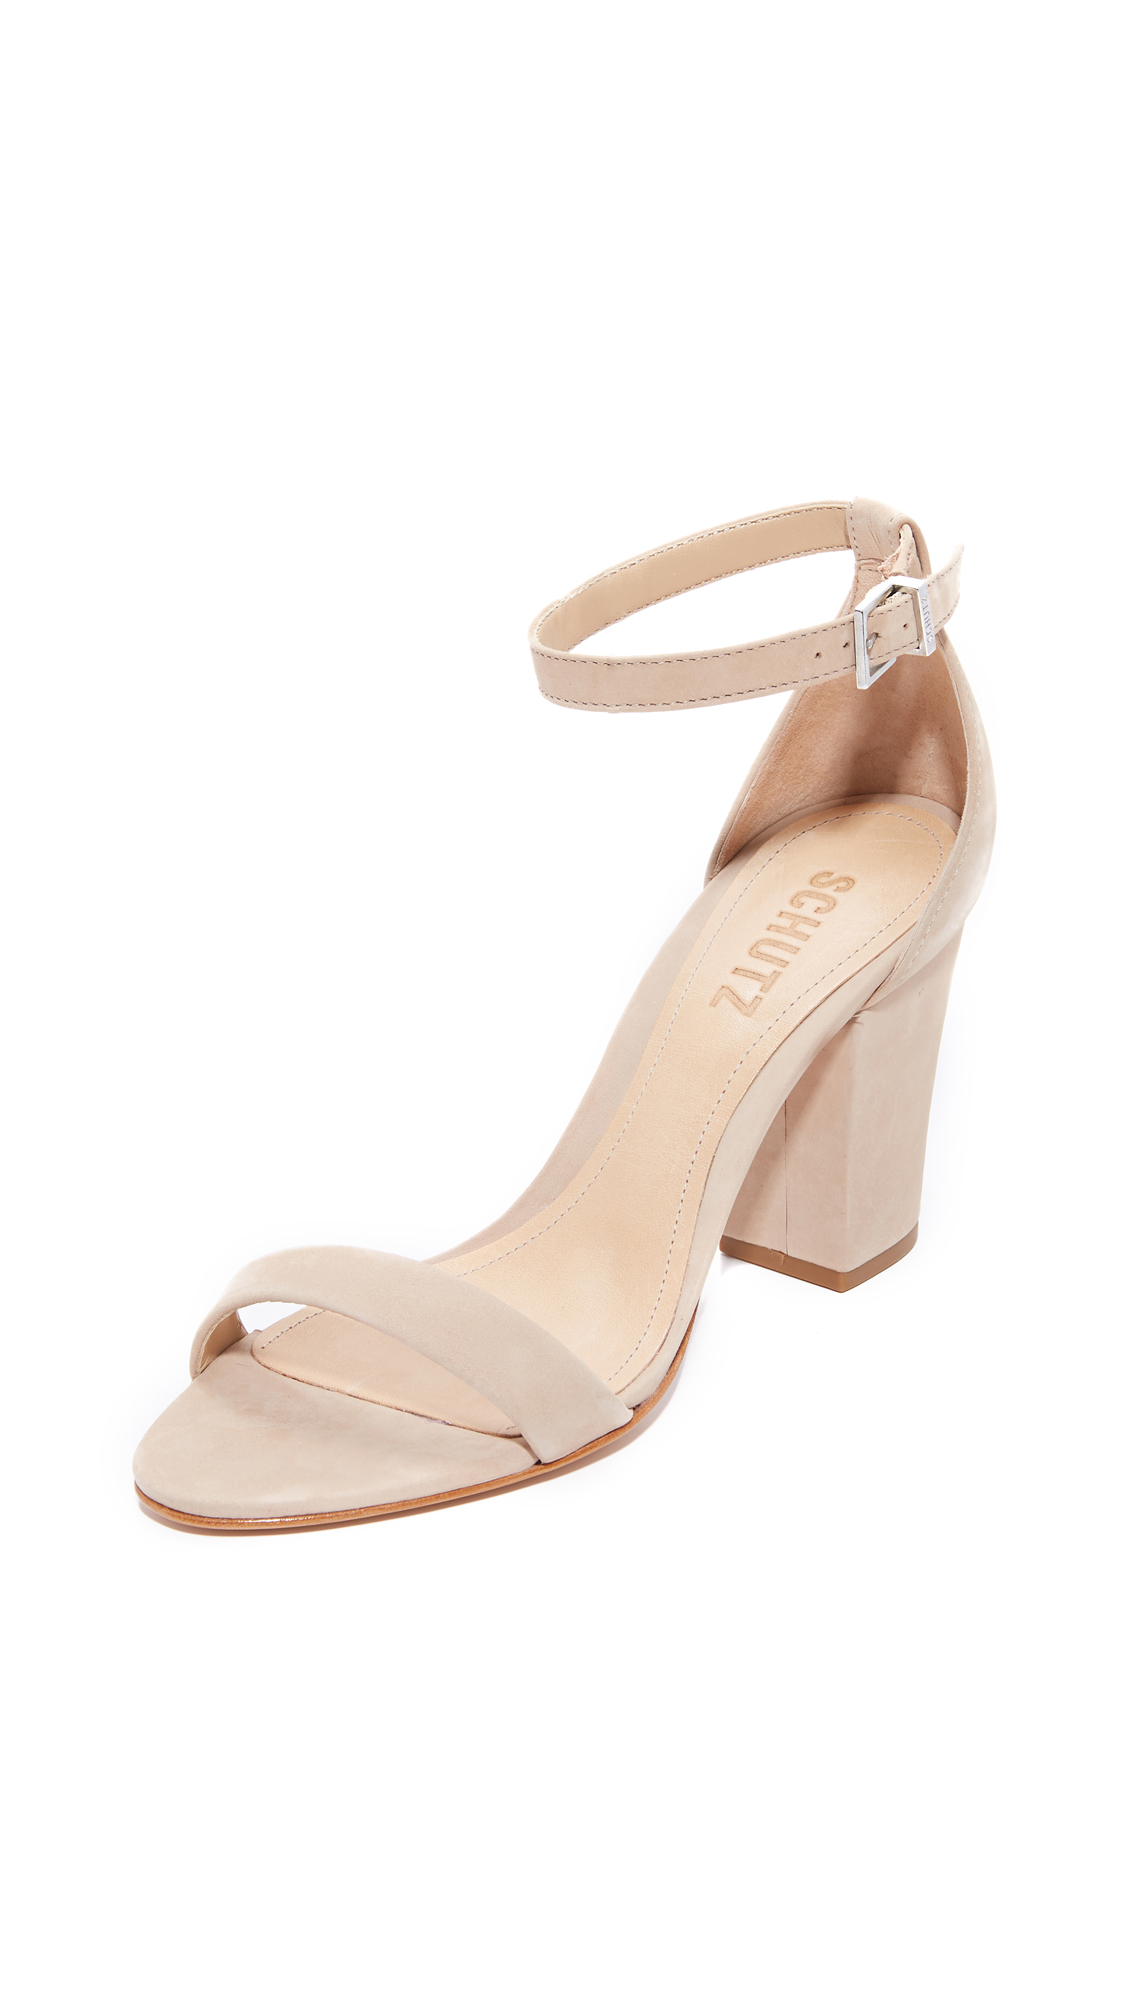 Schutz Jenny Lee Sandals - Amber Light